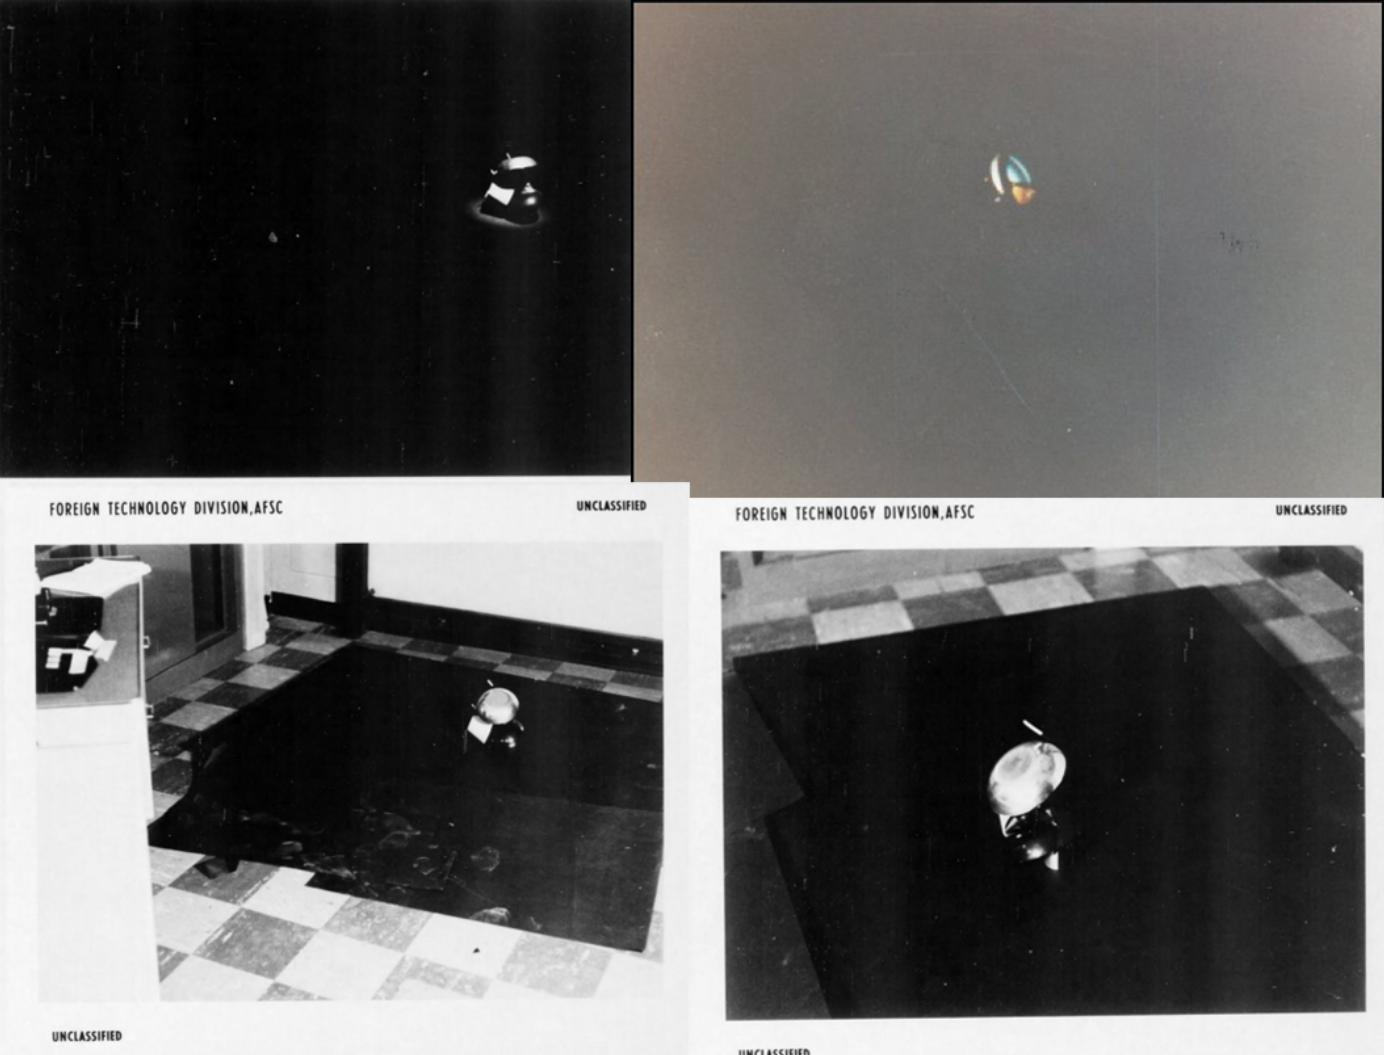 Propaganda of Project Blue Book | The Best Photos Of 'UFOs'  Ae9a3d4869b640aca373284a54033380_1d3a8a60b2f440359d967db7ad0f1a08_1_original